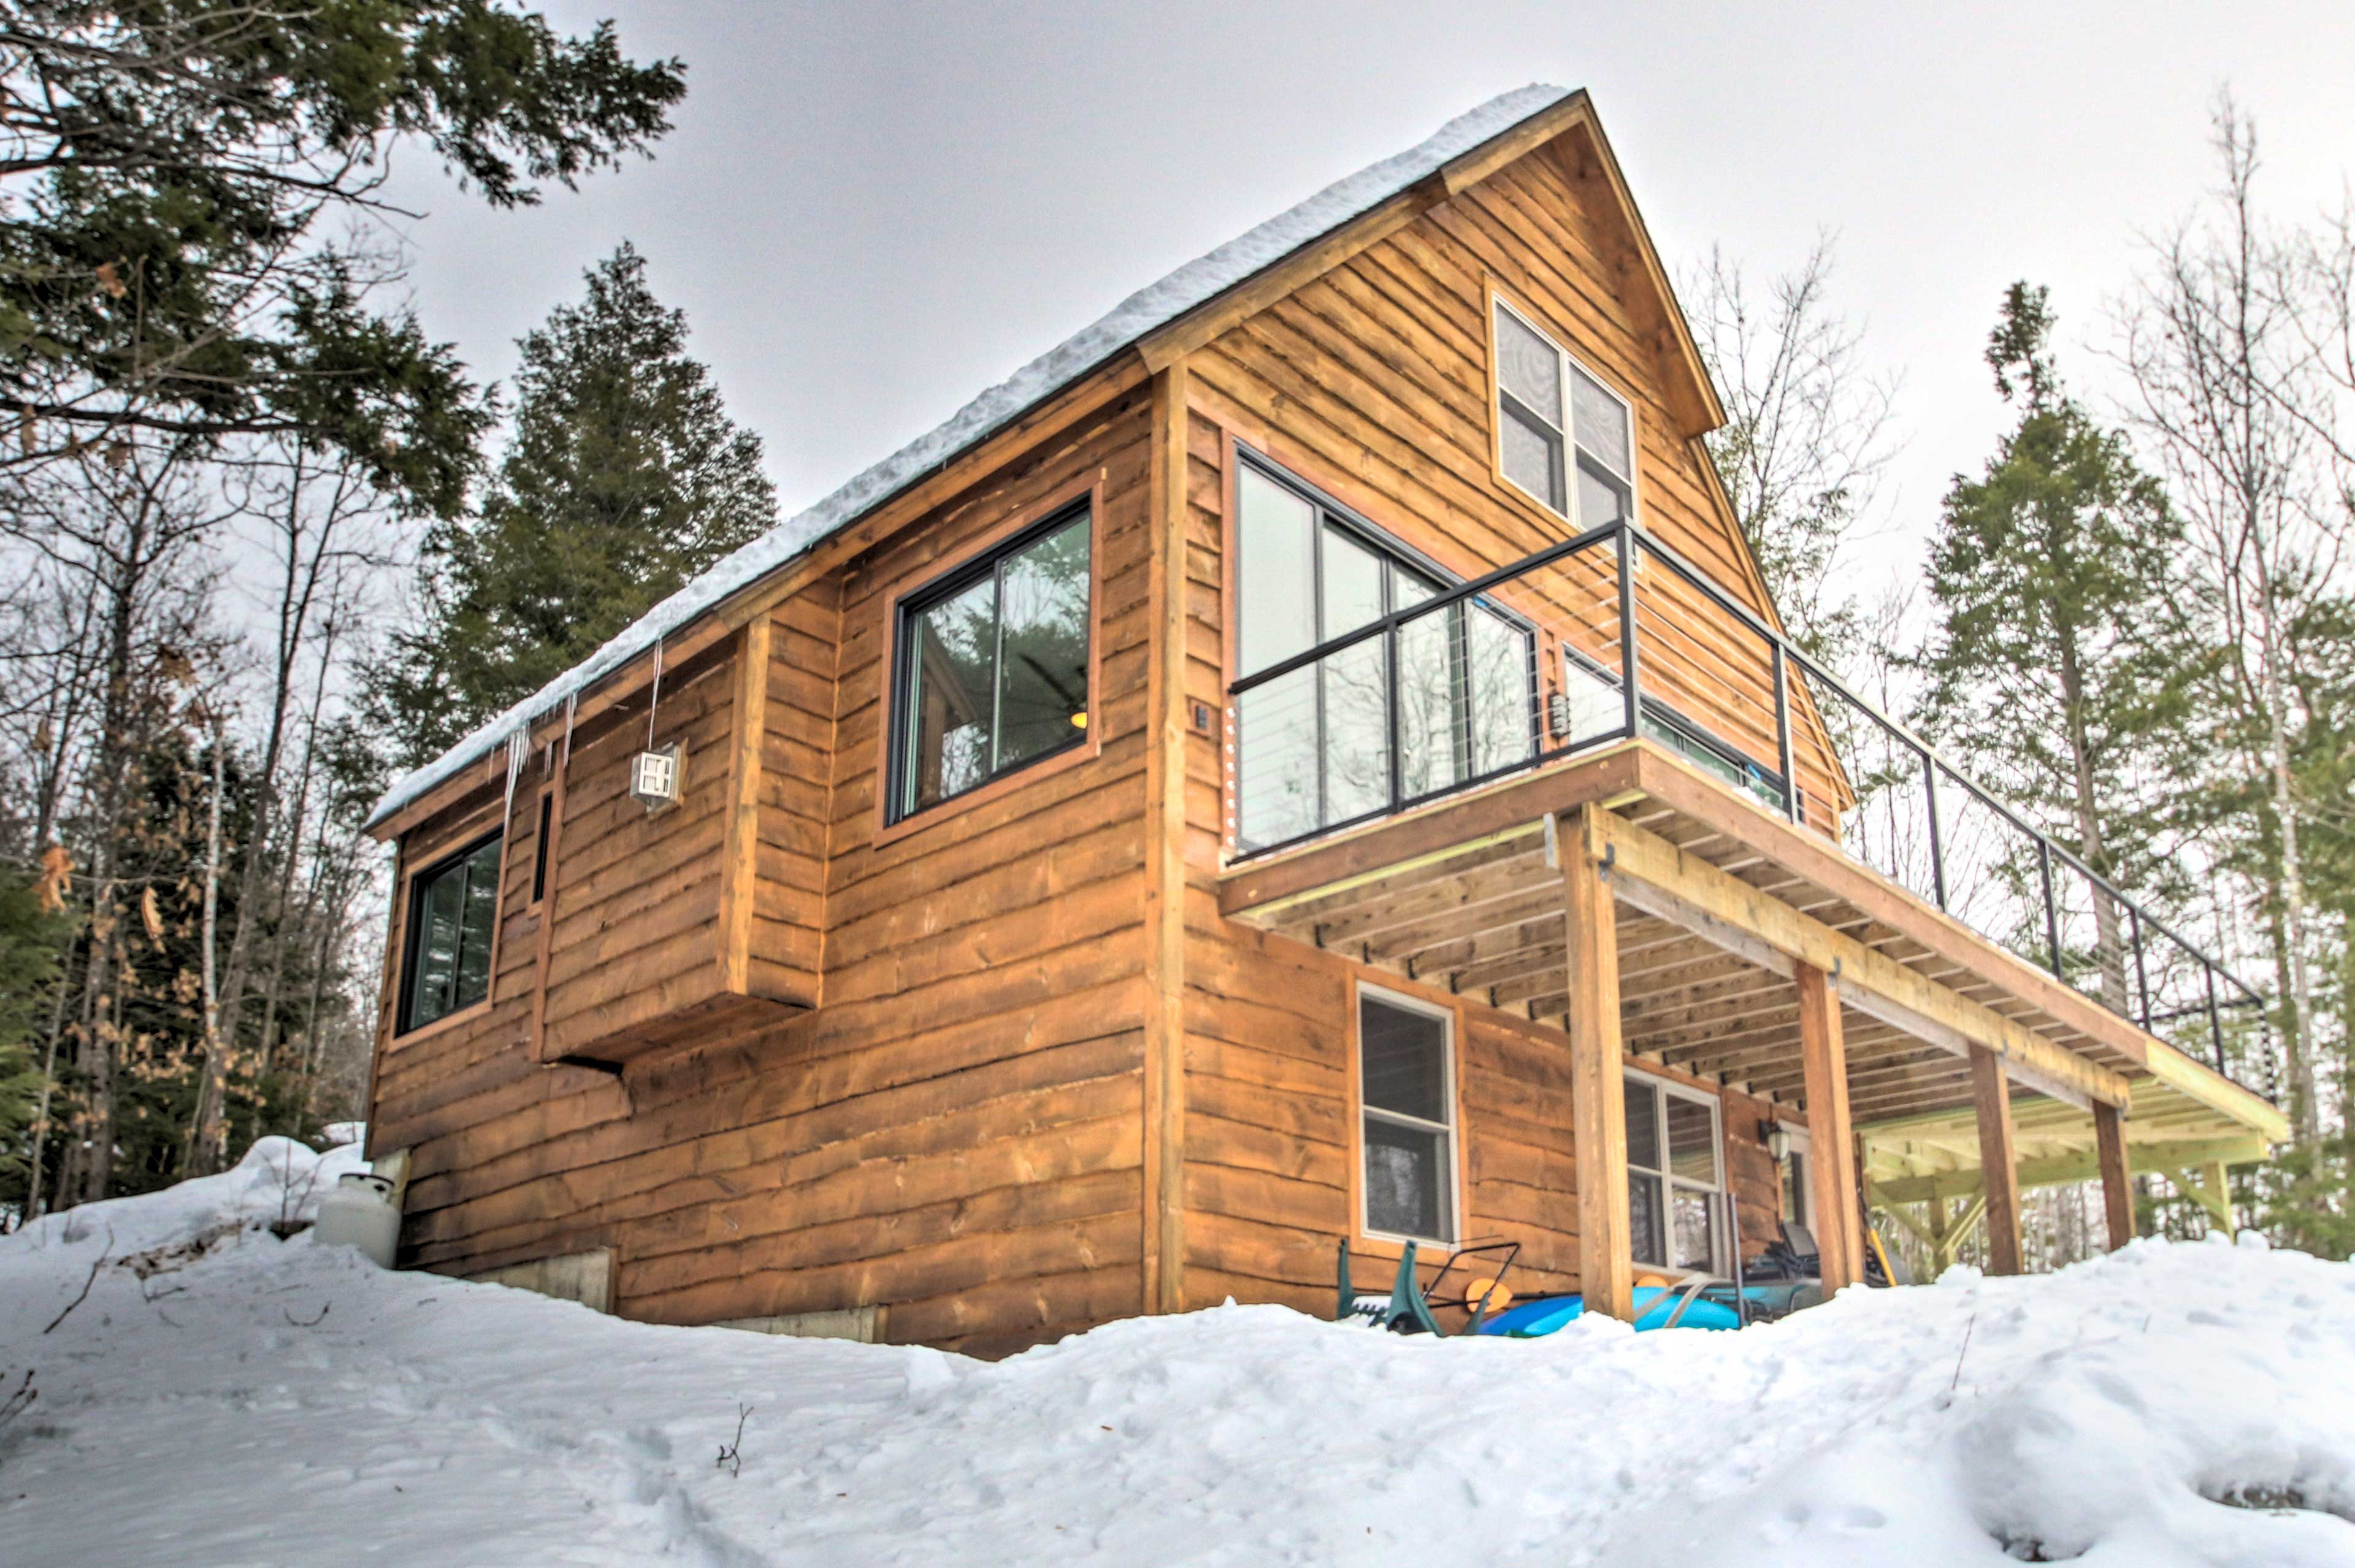 You won't soon forget this vacation rental!